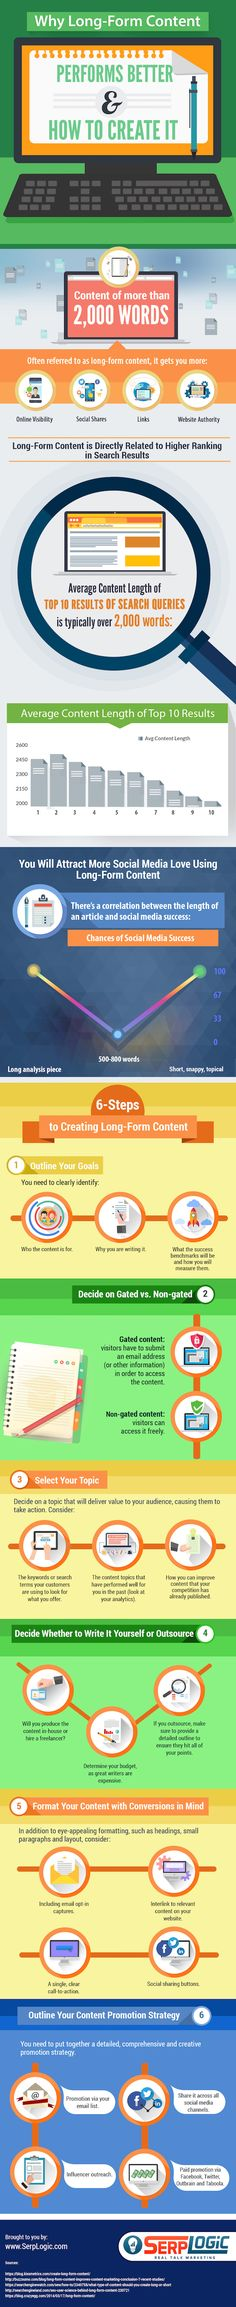 Why Long-Form Content Performs Better & How to Create It (Infographic) - @entmagazine